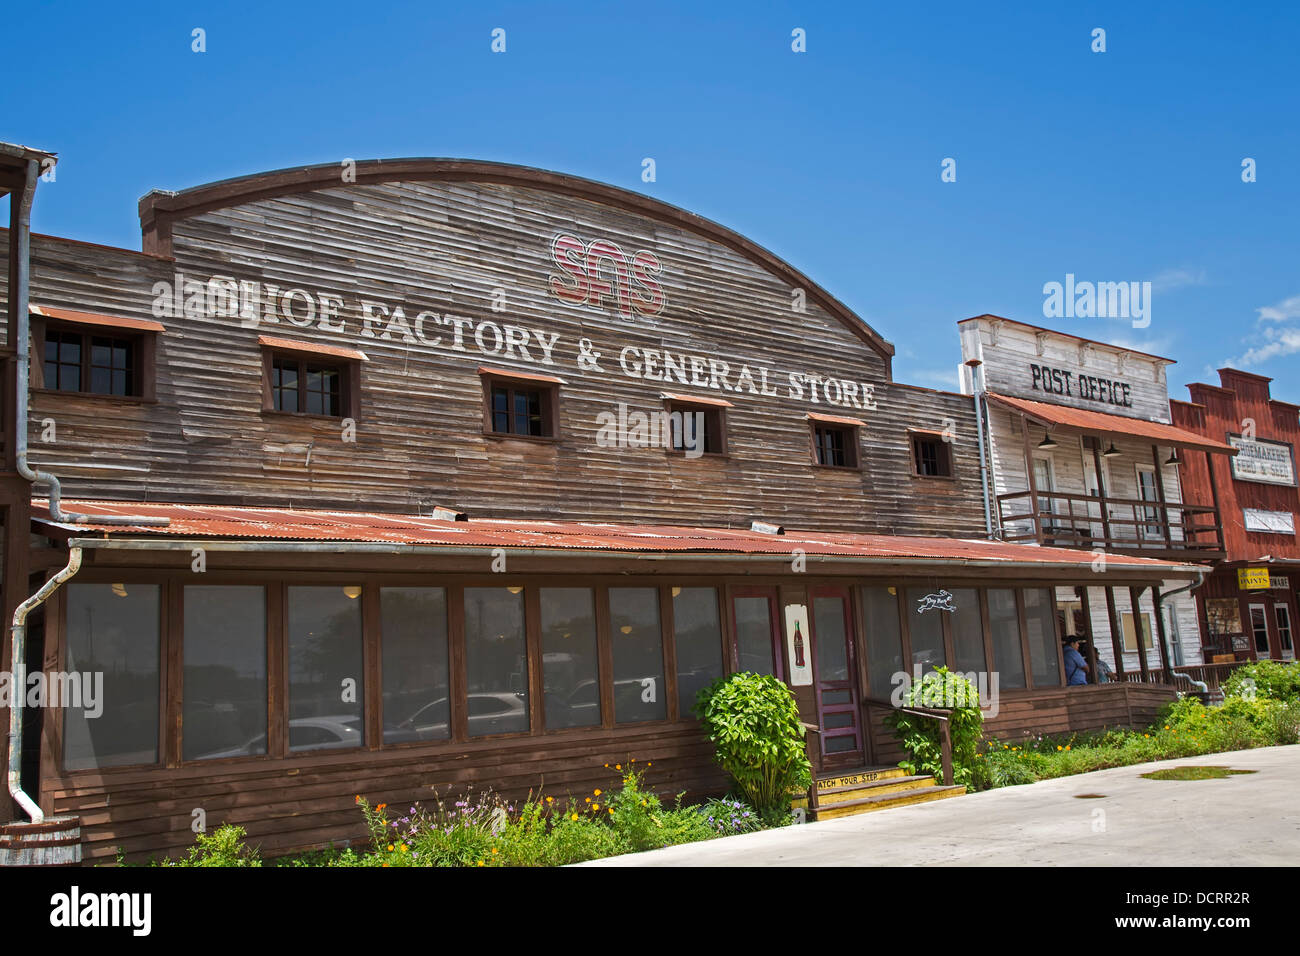 San Antonio, Texas - The SAS shoe factory and general store. - Stock Image